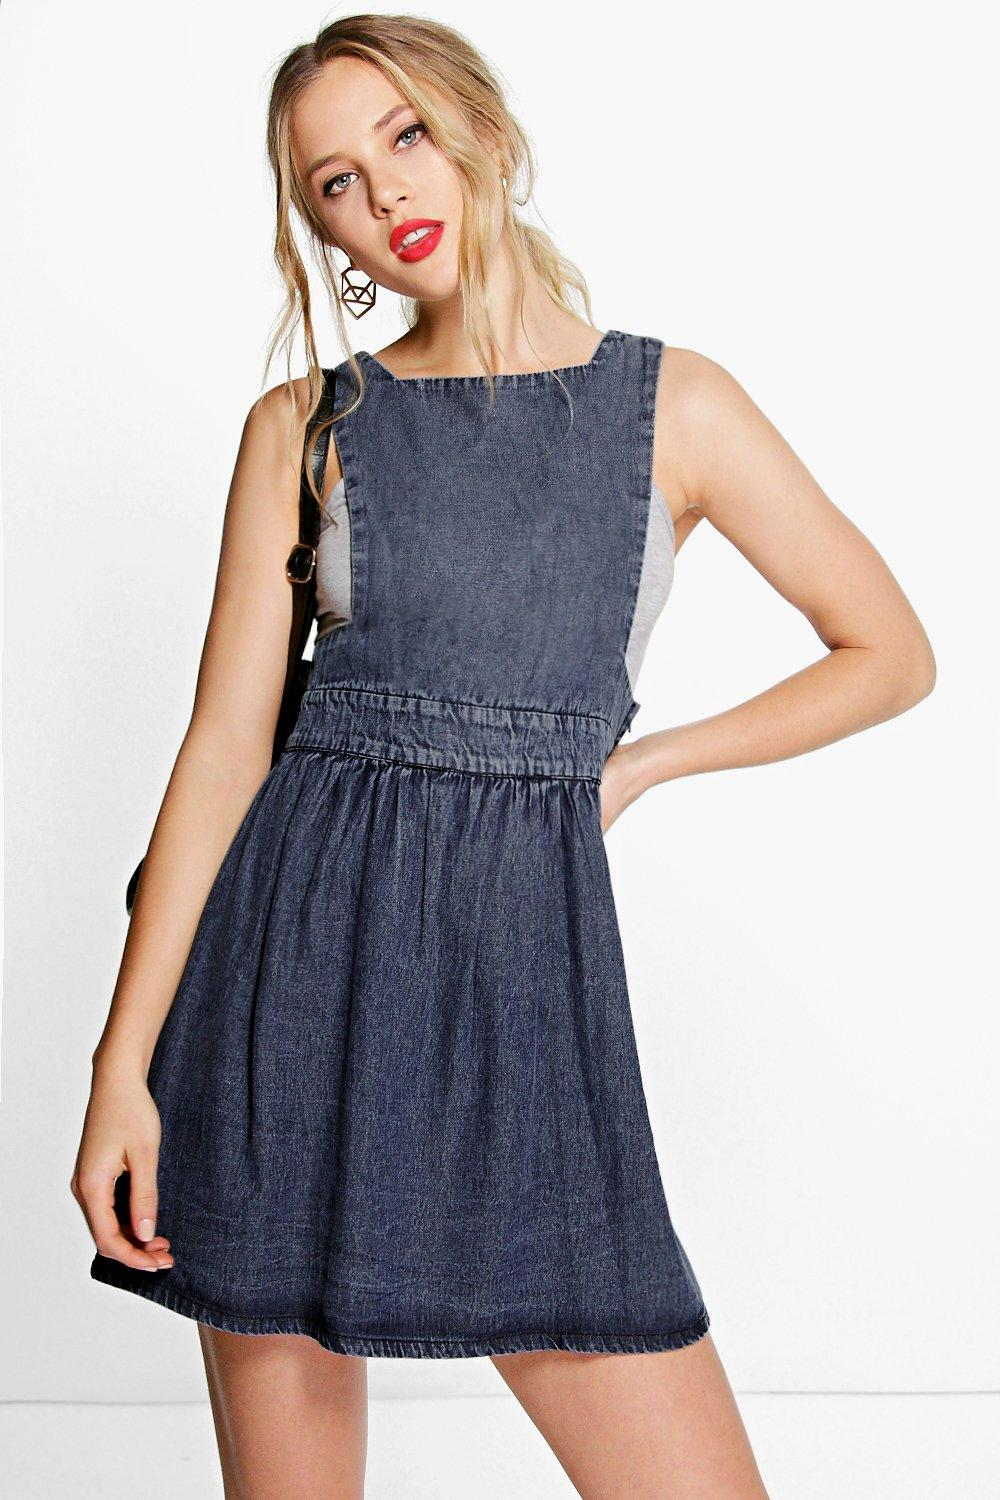 Petite Women's Topshop Raw Hem Denim Pinafore Dress $ at NORDSTROM. Nineties-style overalls become playful, modern must-haves as this mid wash-denim pinafore dress with a raw cutoff hem for a little edgy attitude. Style Name: Topshop Raw Hem Denim Pinafore Dress (Petite). Style Number: